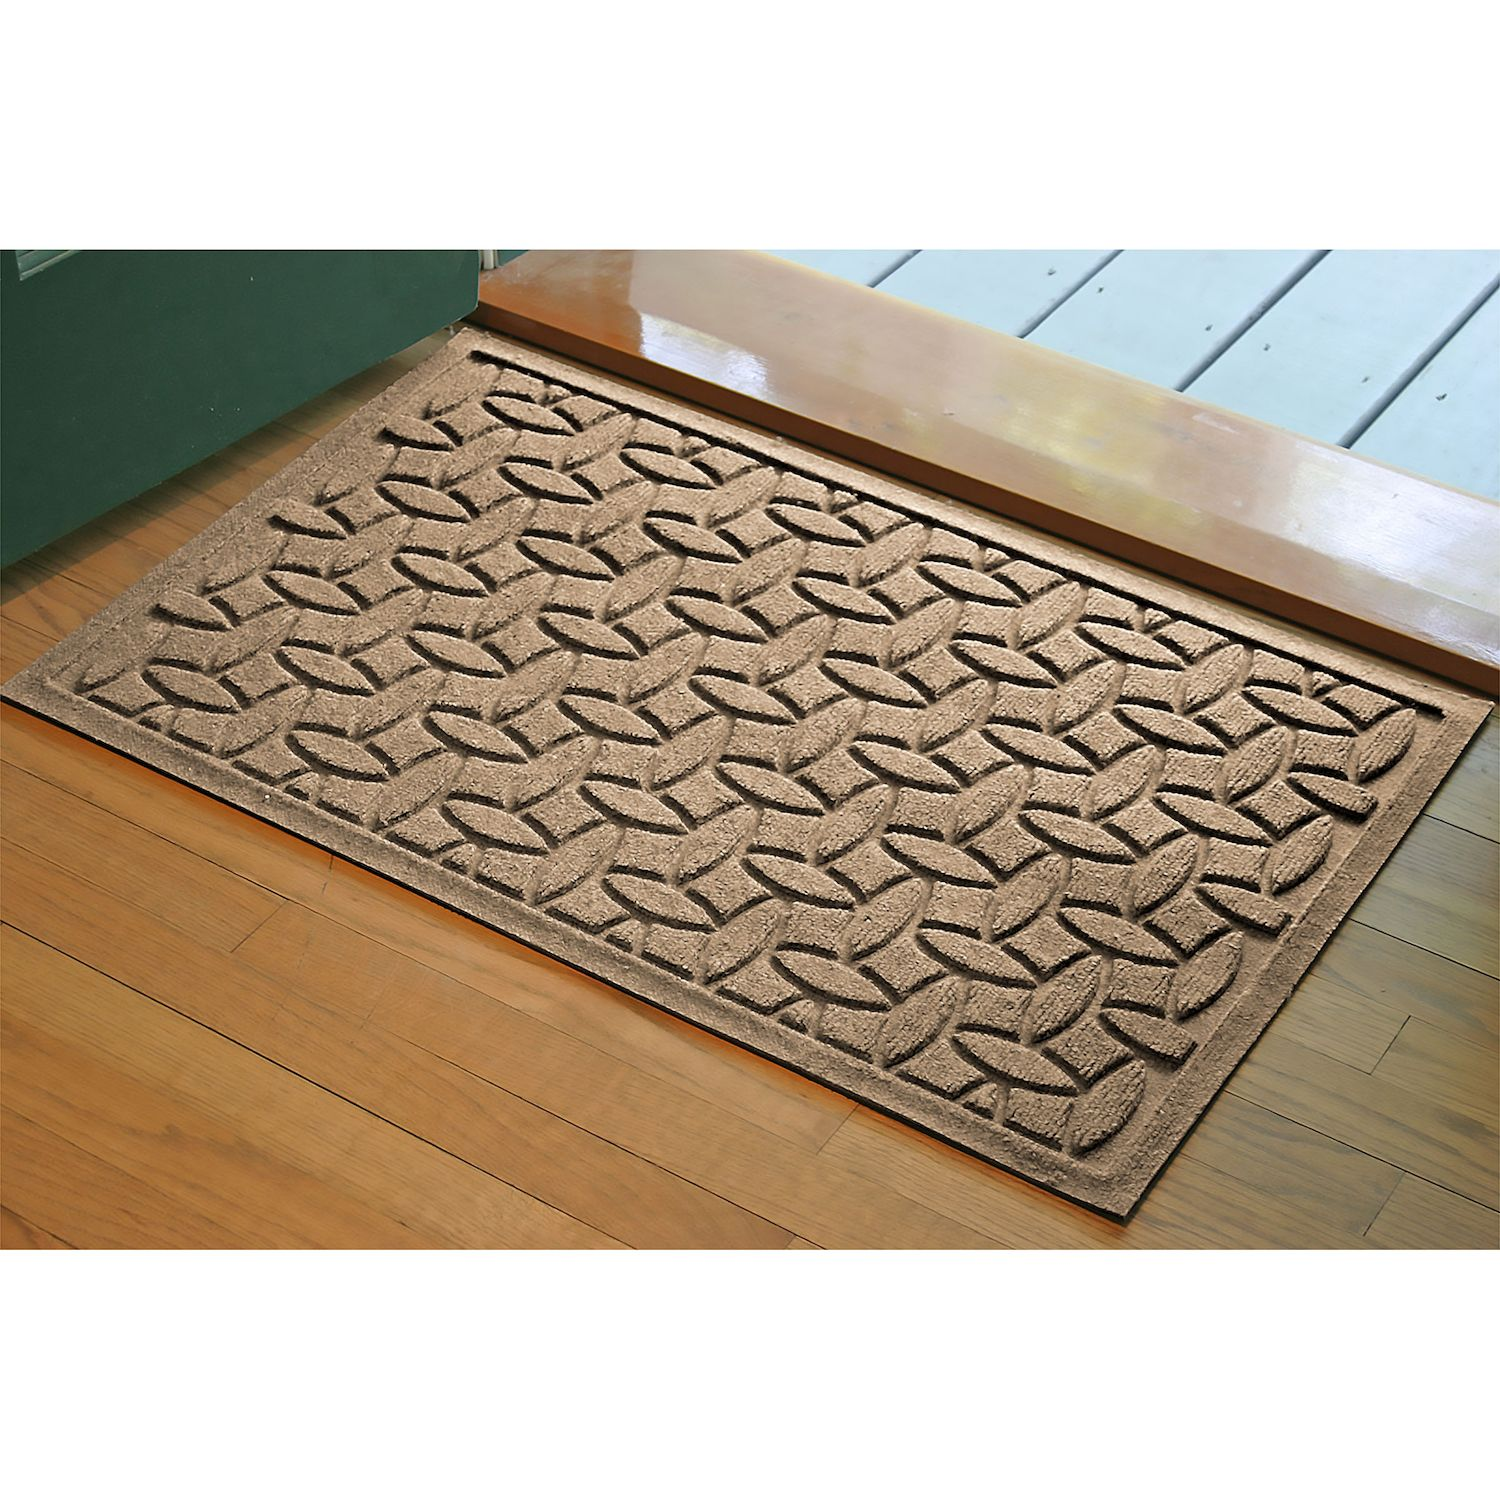 of indoor photo mats guard monogrammed entry waterguard marvelous front interior design monogram for and com apply mckinley doormat marriagedivorceadvice to door x mat water